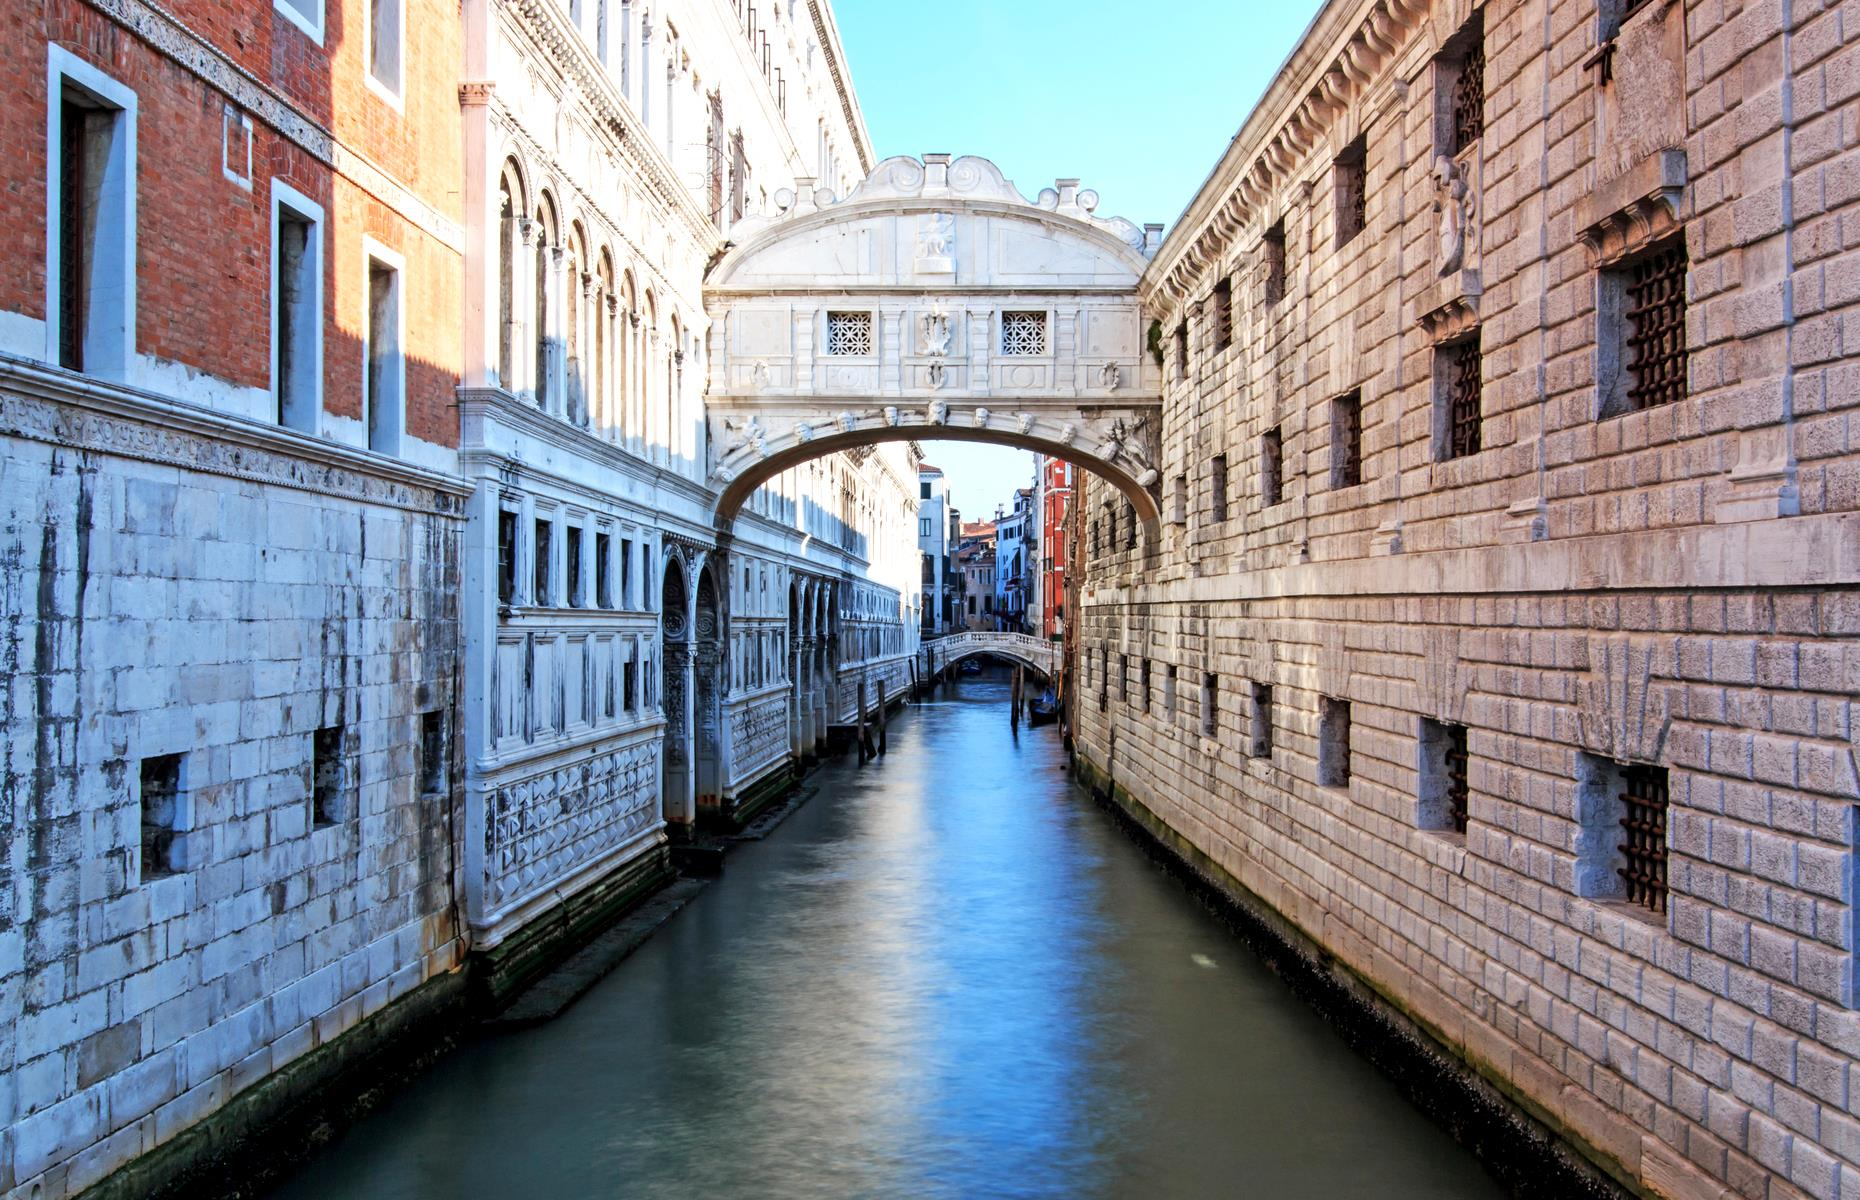 Slide 21 of 31: Often touted as one of the most beautiful bridges in the world, and certainly one of the most photographed, Venice's Ponte dei Sospiri, or Bridge of Sighs, was constructed around 1600. It was built to connect the old prison and interrogation rooms in the Palazzo Ducale to the newer prison across the canal, and its name reportedly comes from the sighs of the prisoners who crossed its expanse. Legend has it that if a couple kisses under the bridge while on a gondola at sunset, they will enjoy eternal love.